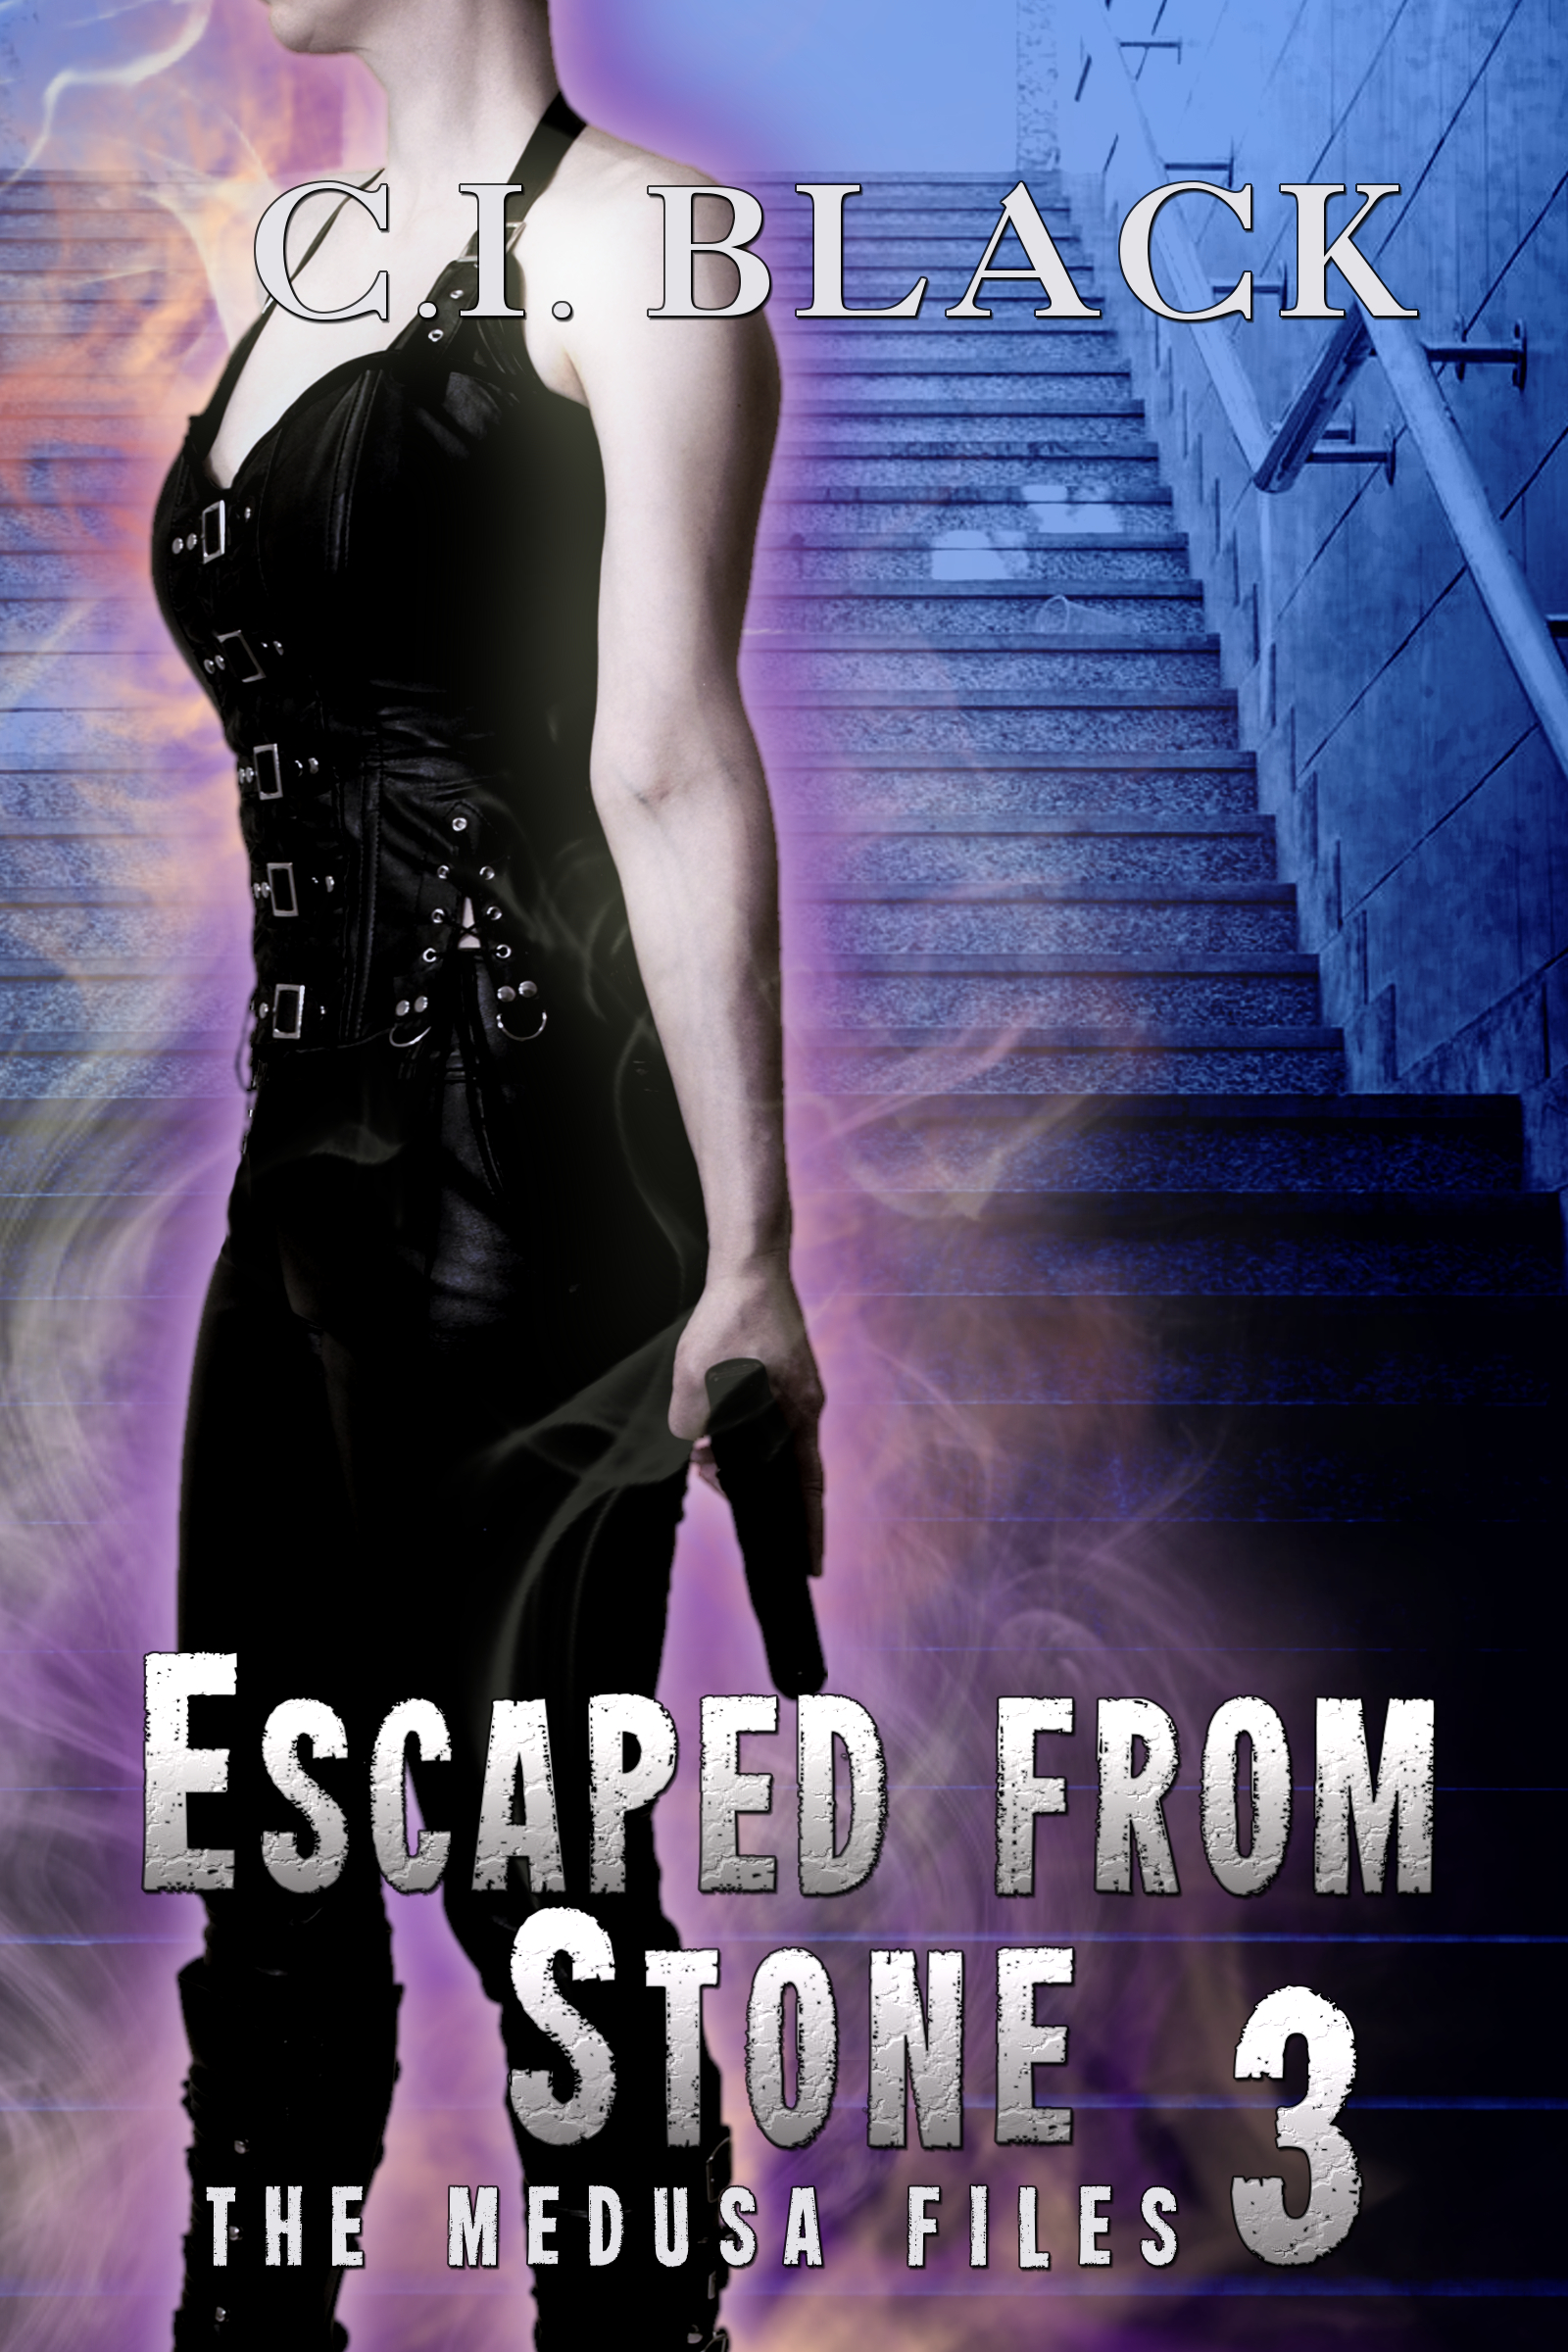 The Medusa Files, case 3: Escaped From Stone, an urban fantasy / paranormal romance and the third book in the Medusa Files series by C.I. Black